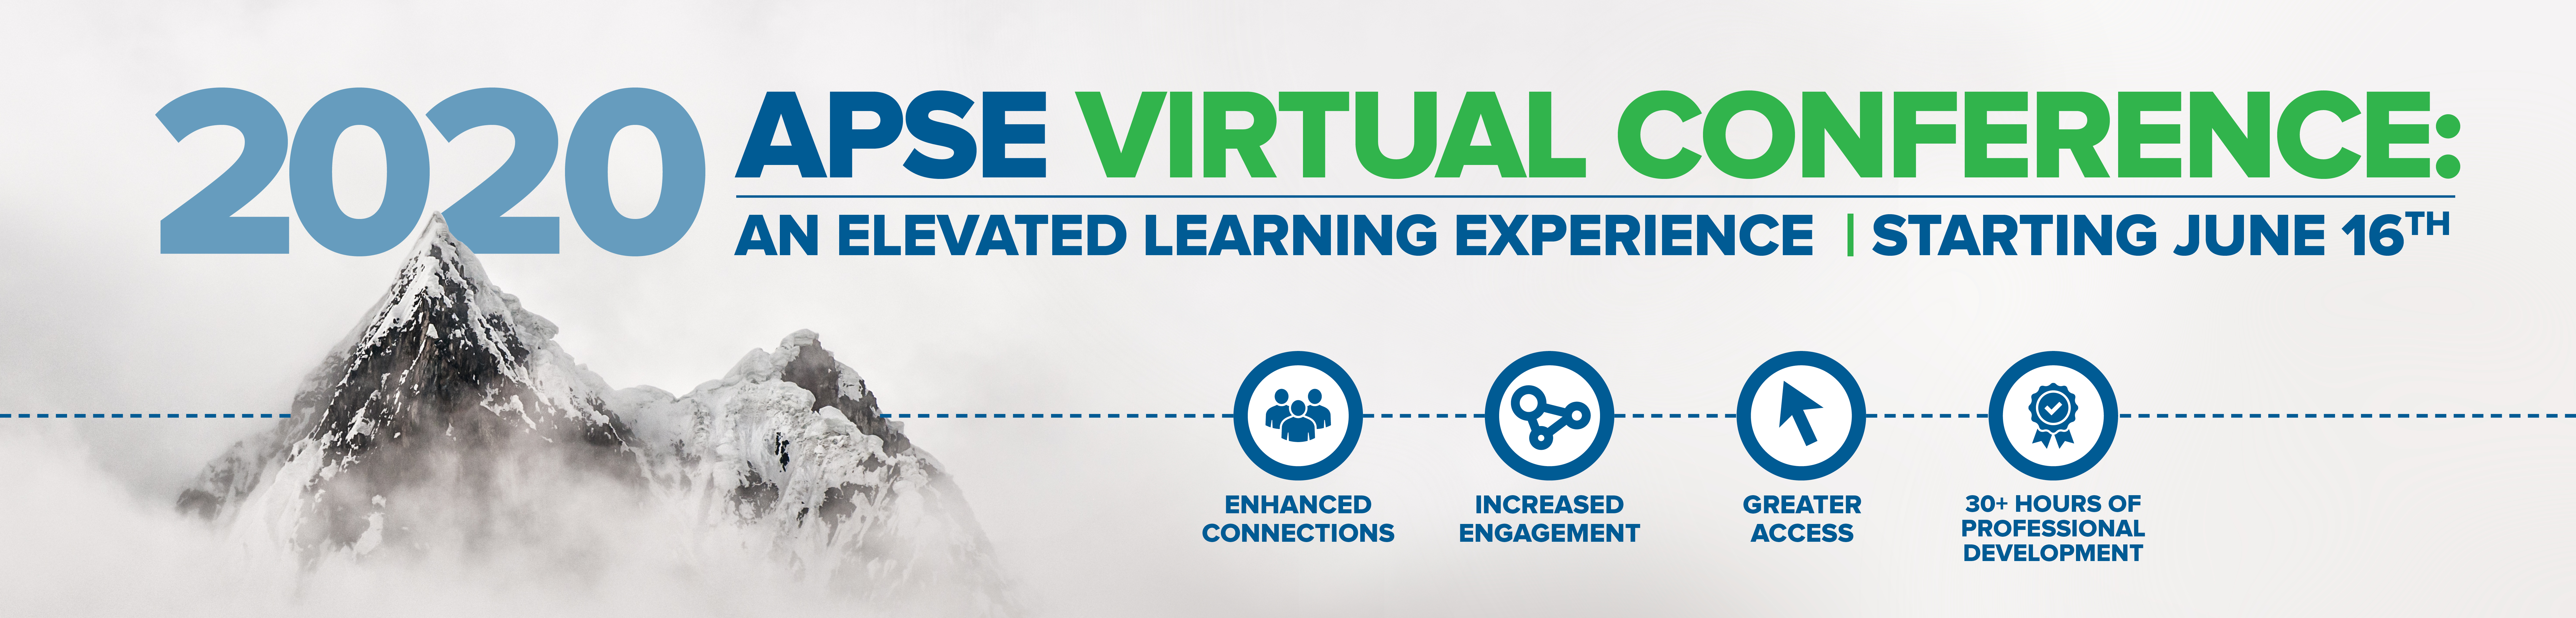 Mountain in clouds. Text: APSE Virtual Conference: An Elevated Learning Experience, Starting June 16.